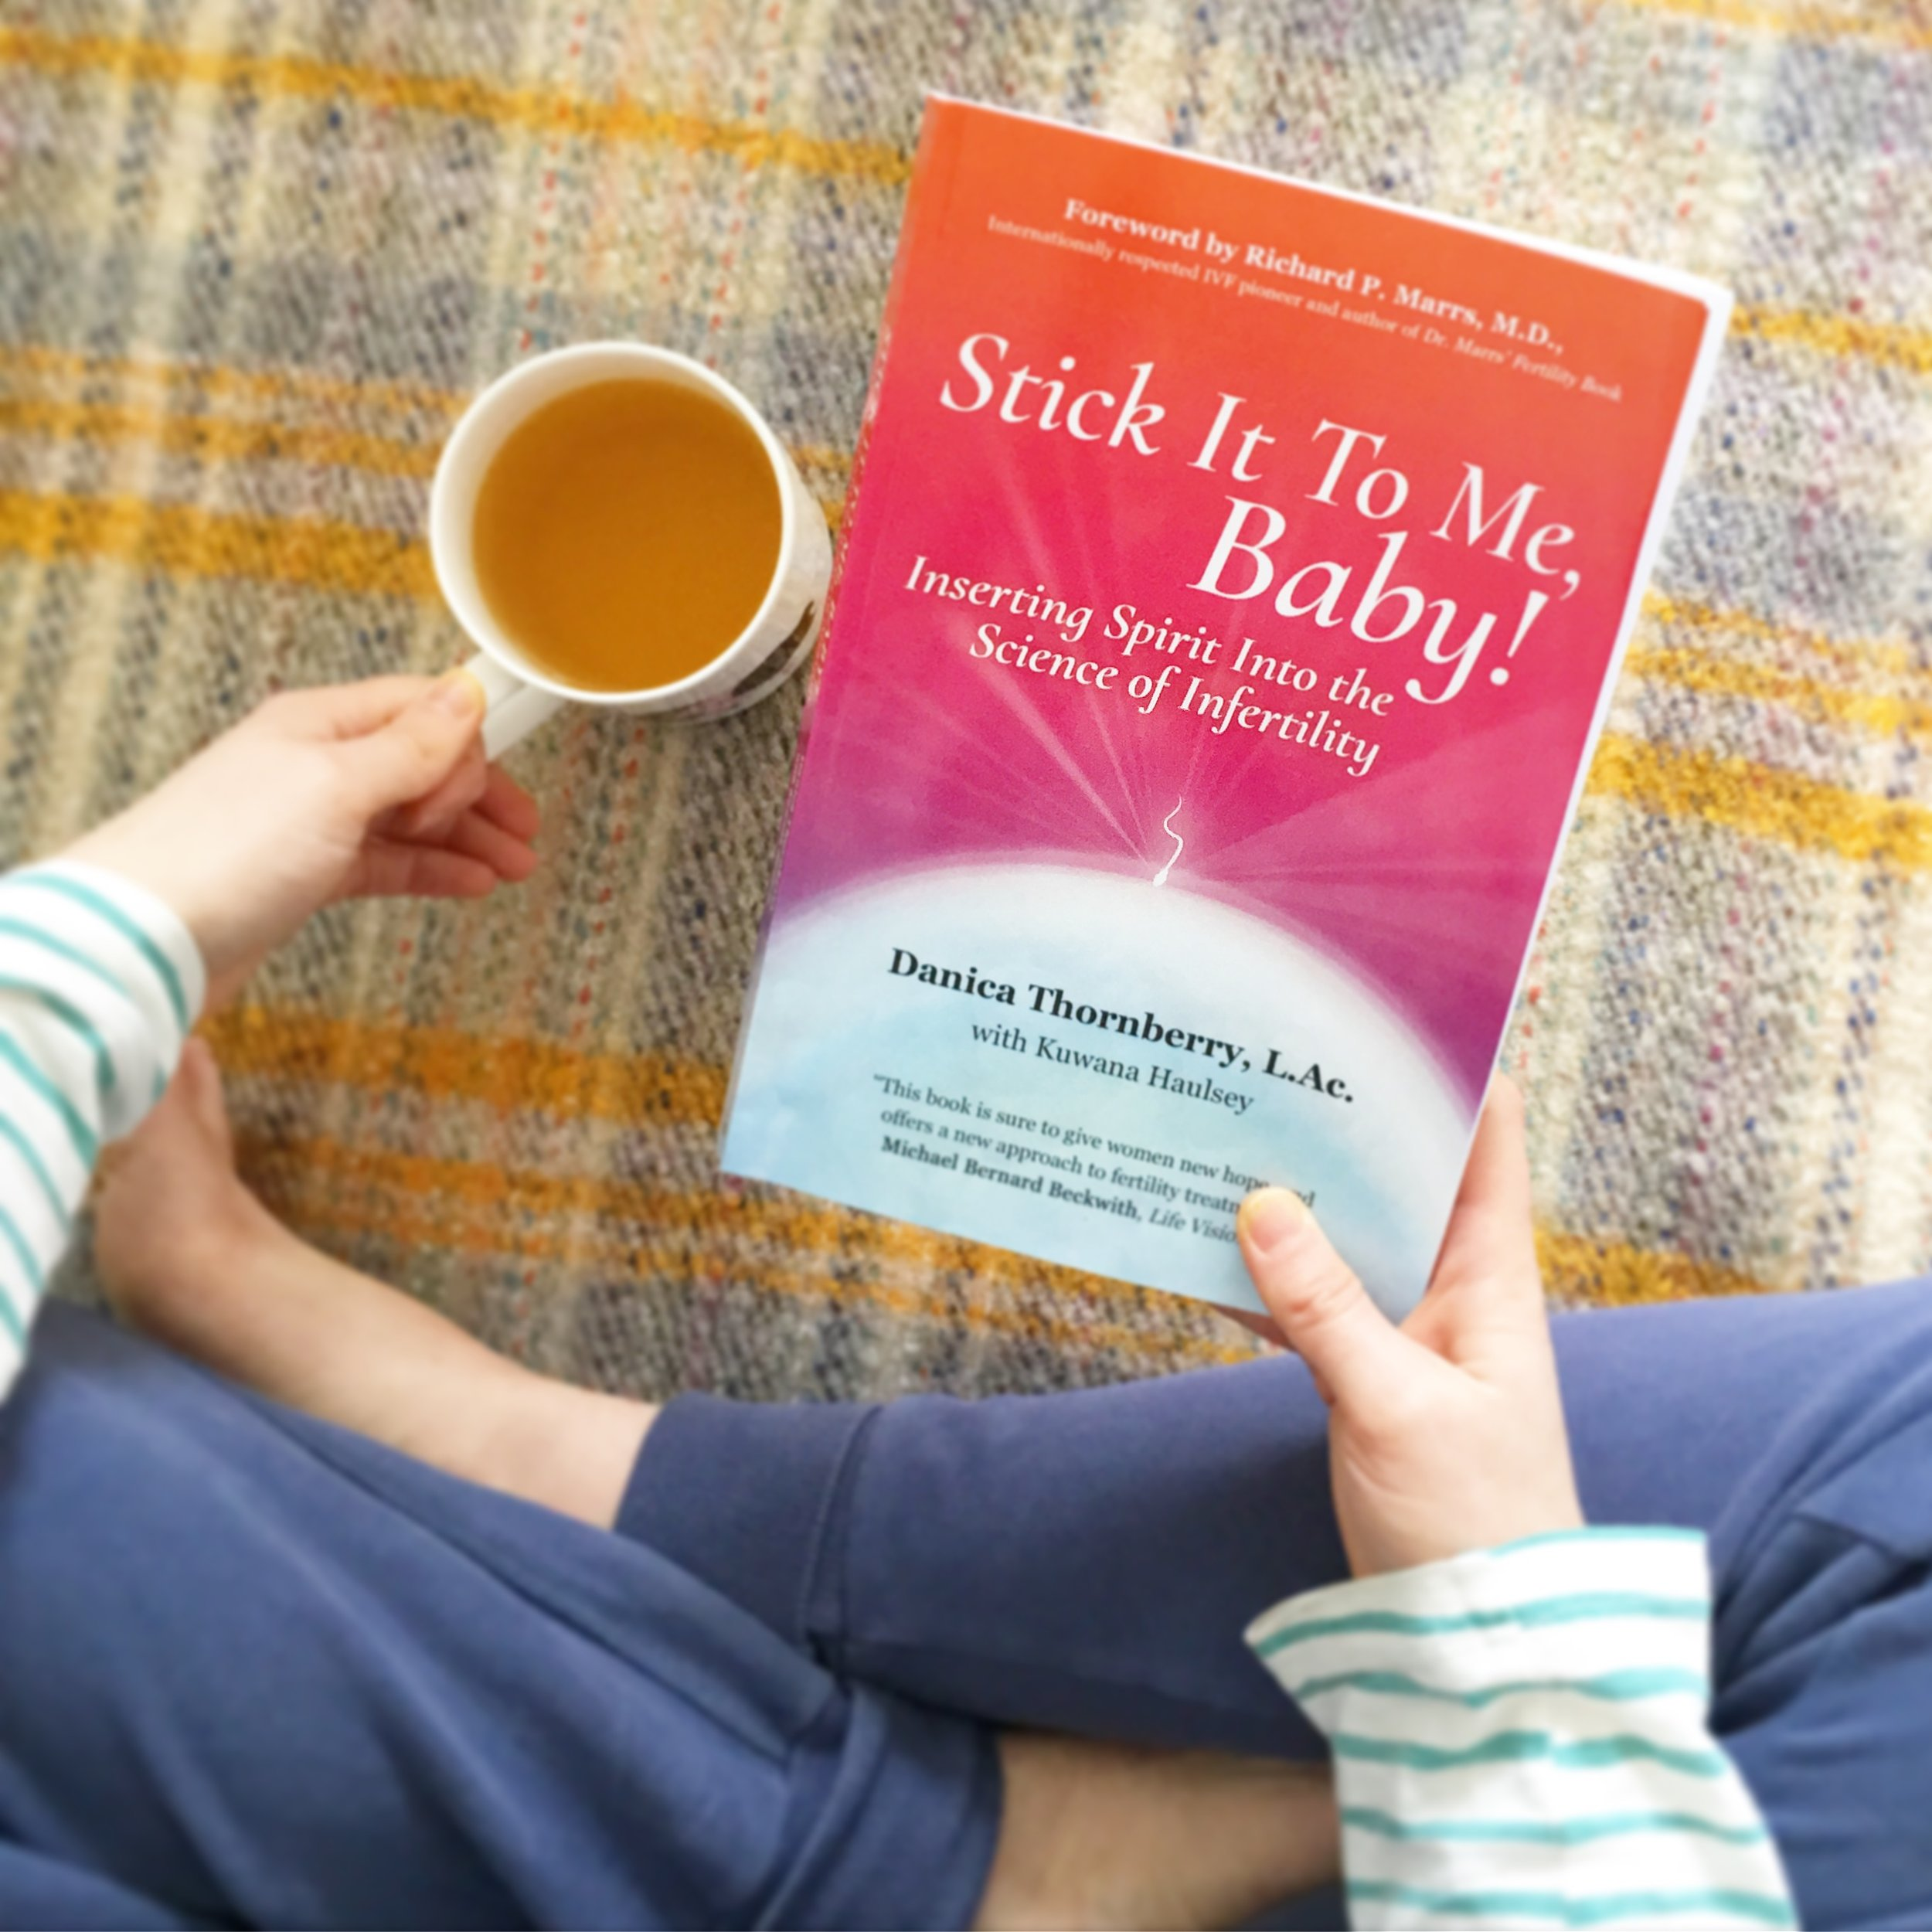 The Preggers Kitchen Shop - Stick It To Me Baby book on infertility